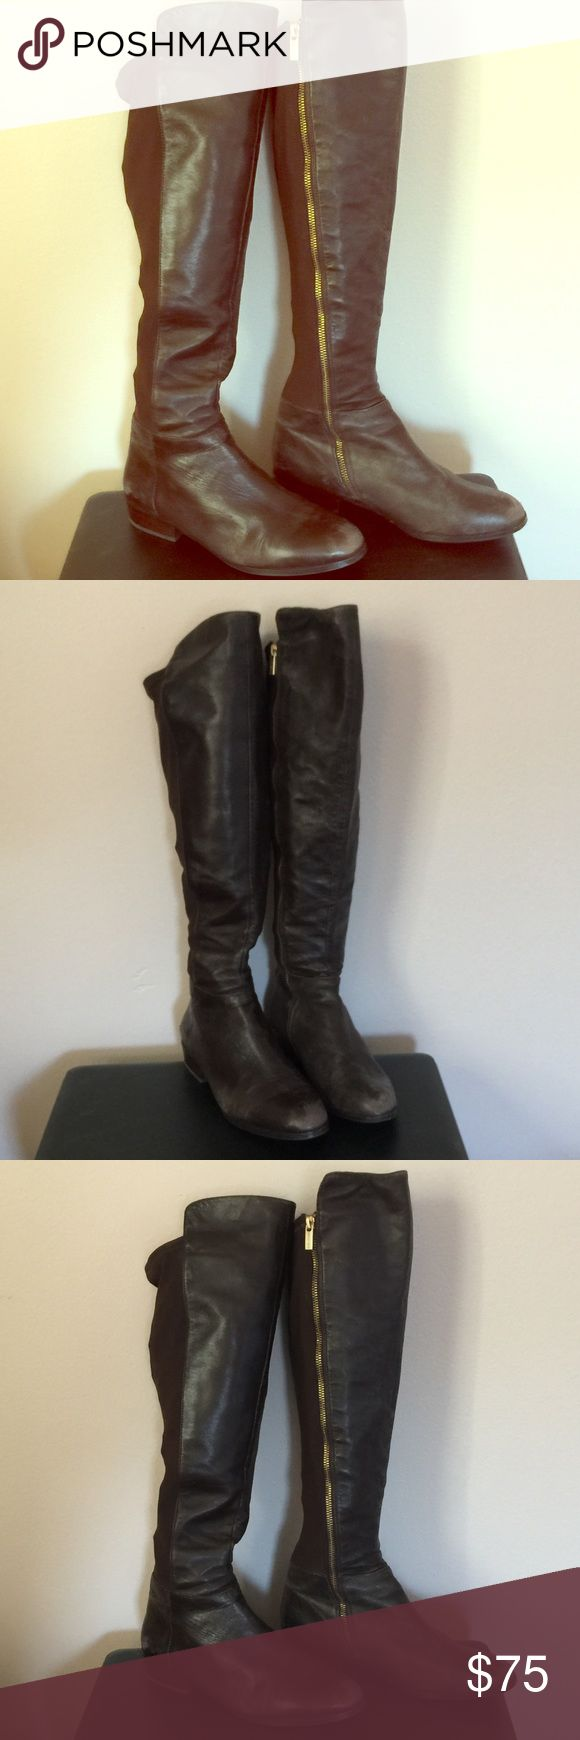 Michael Kors Brown Over Knee Leather Riding Boots Michael Kors riding boots in brown leather with elastic back. These boots have the Michael Kors logo on the bottom of shoes, and on the gold zipper. Worn, and have small signs of wear on the front and backs of shoes as shown. They are super soft, and alrhough they have been worn, they have tons of life left. Look great with jeans or leggings for the Fall/Winter. Size 8.5 and true to size. Michael Kors Shoes Over the Knee Boots